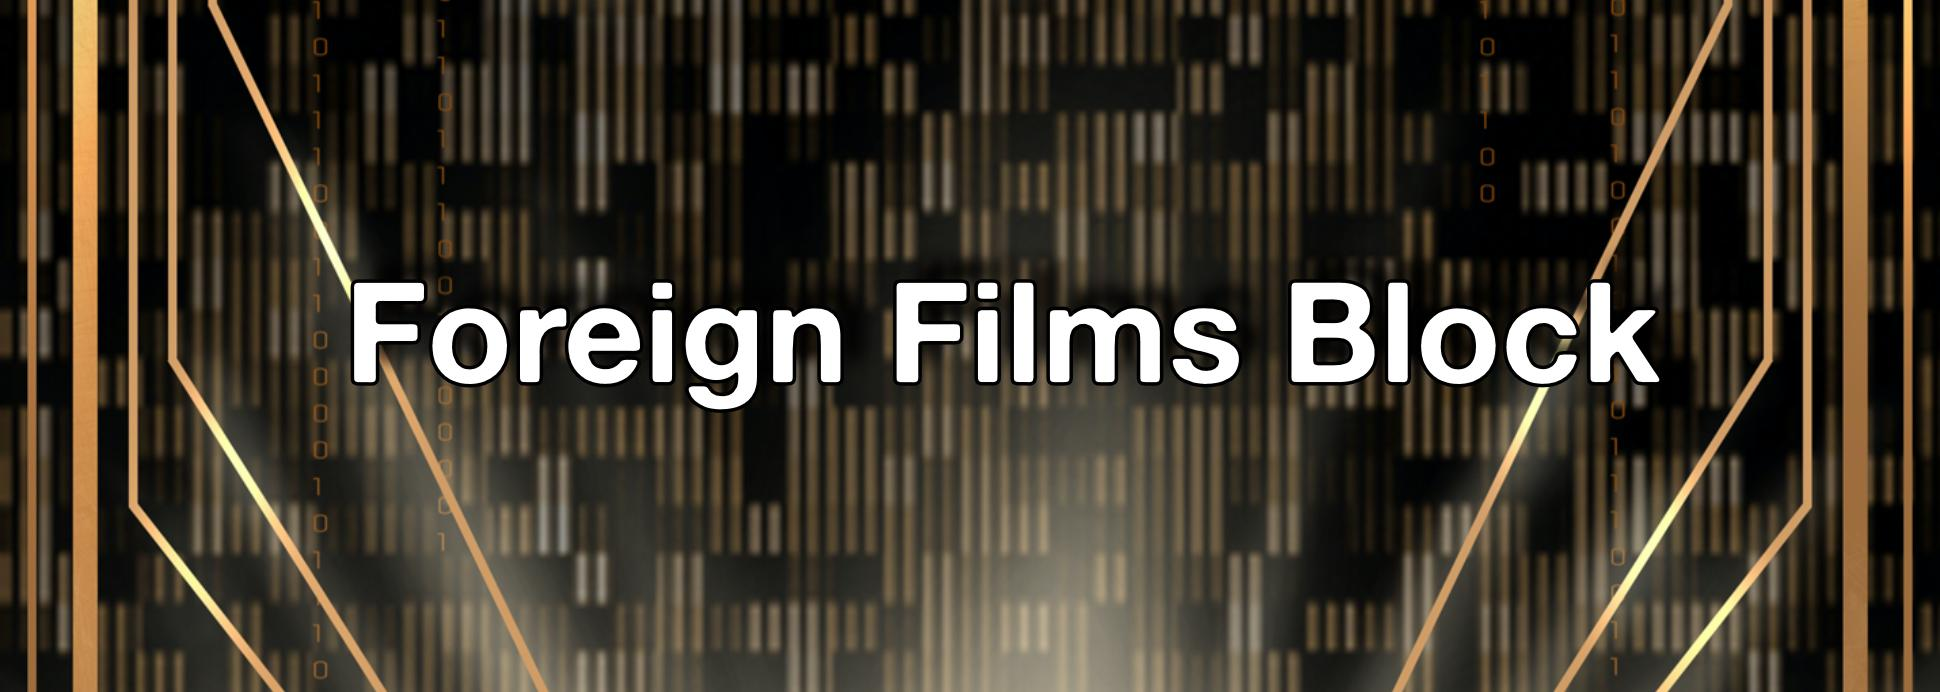 Foreign Films Block